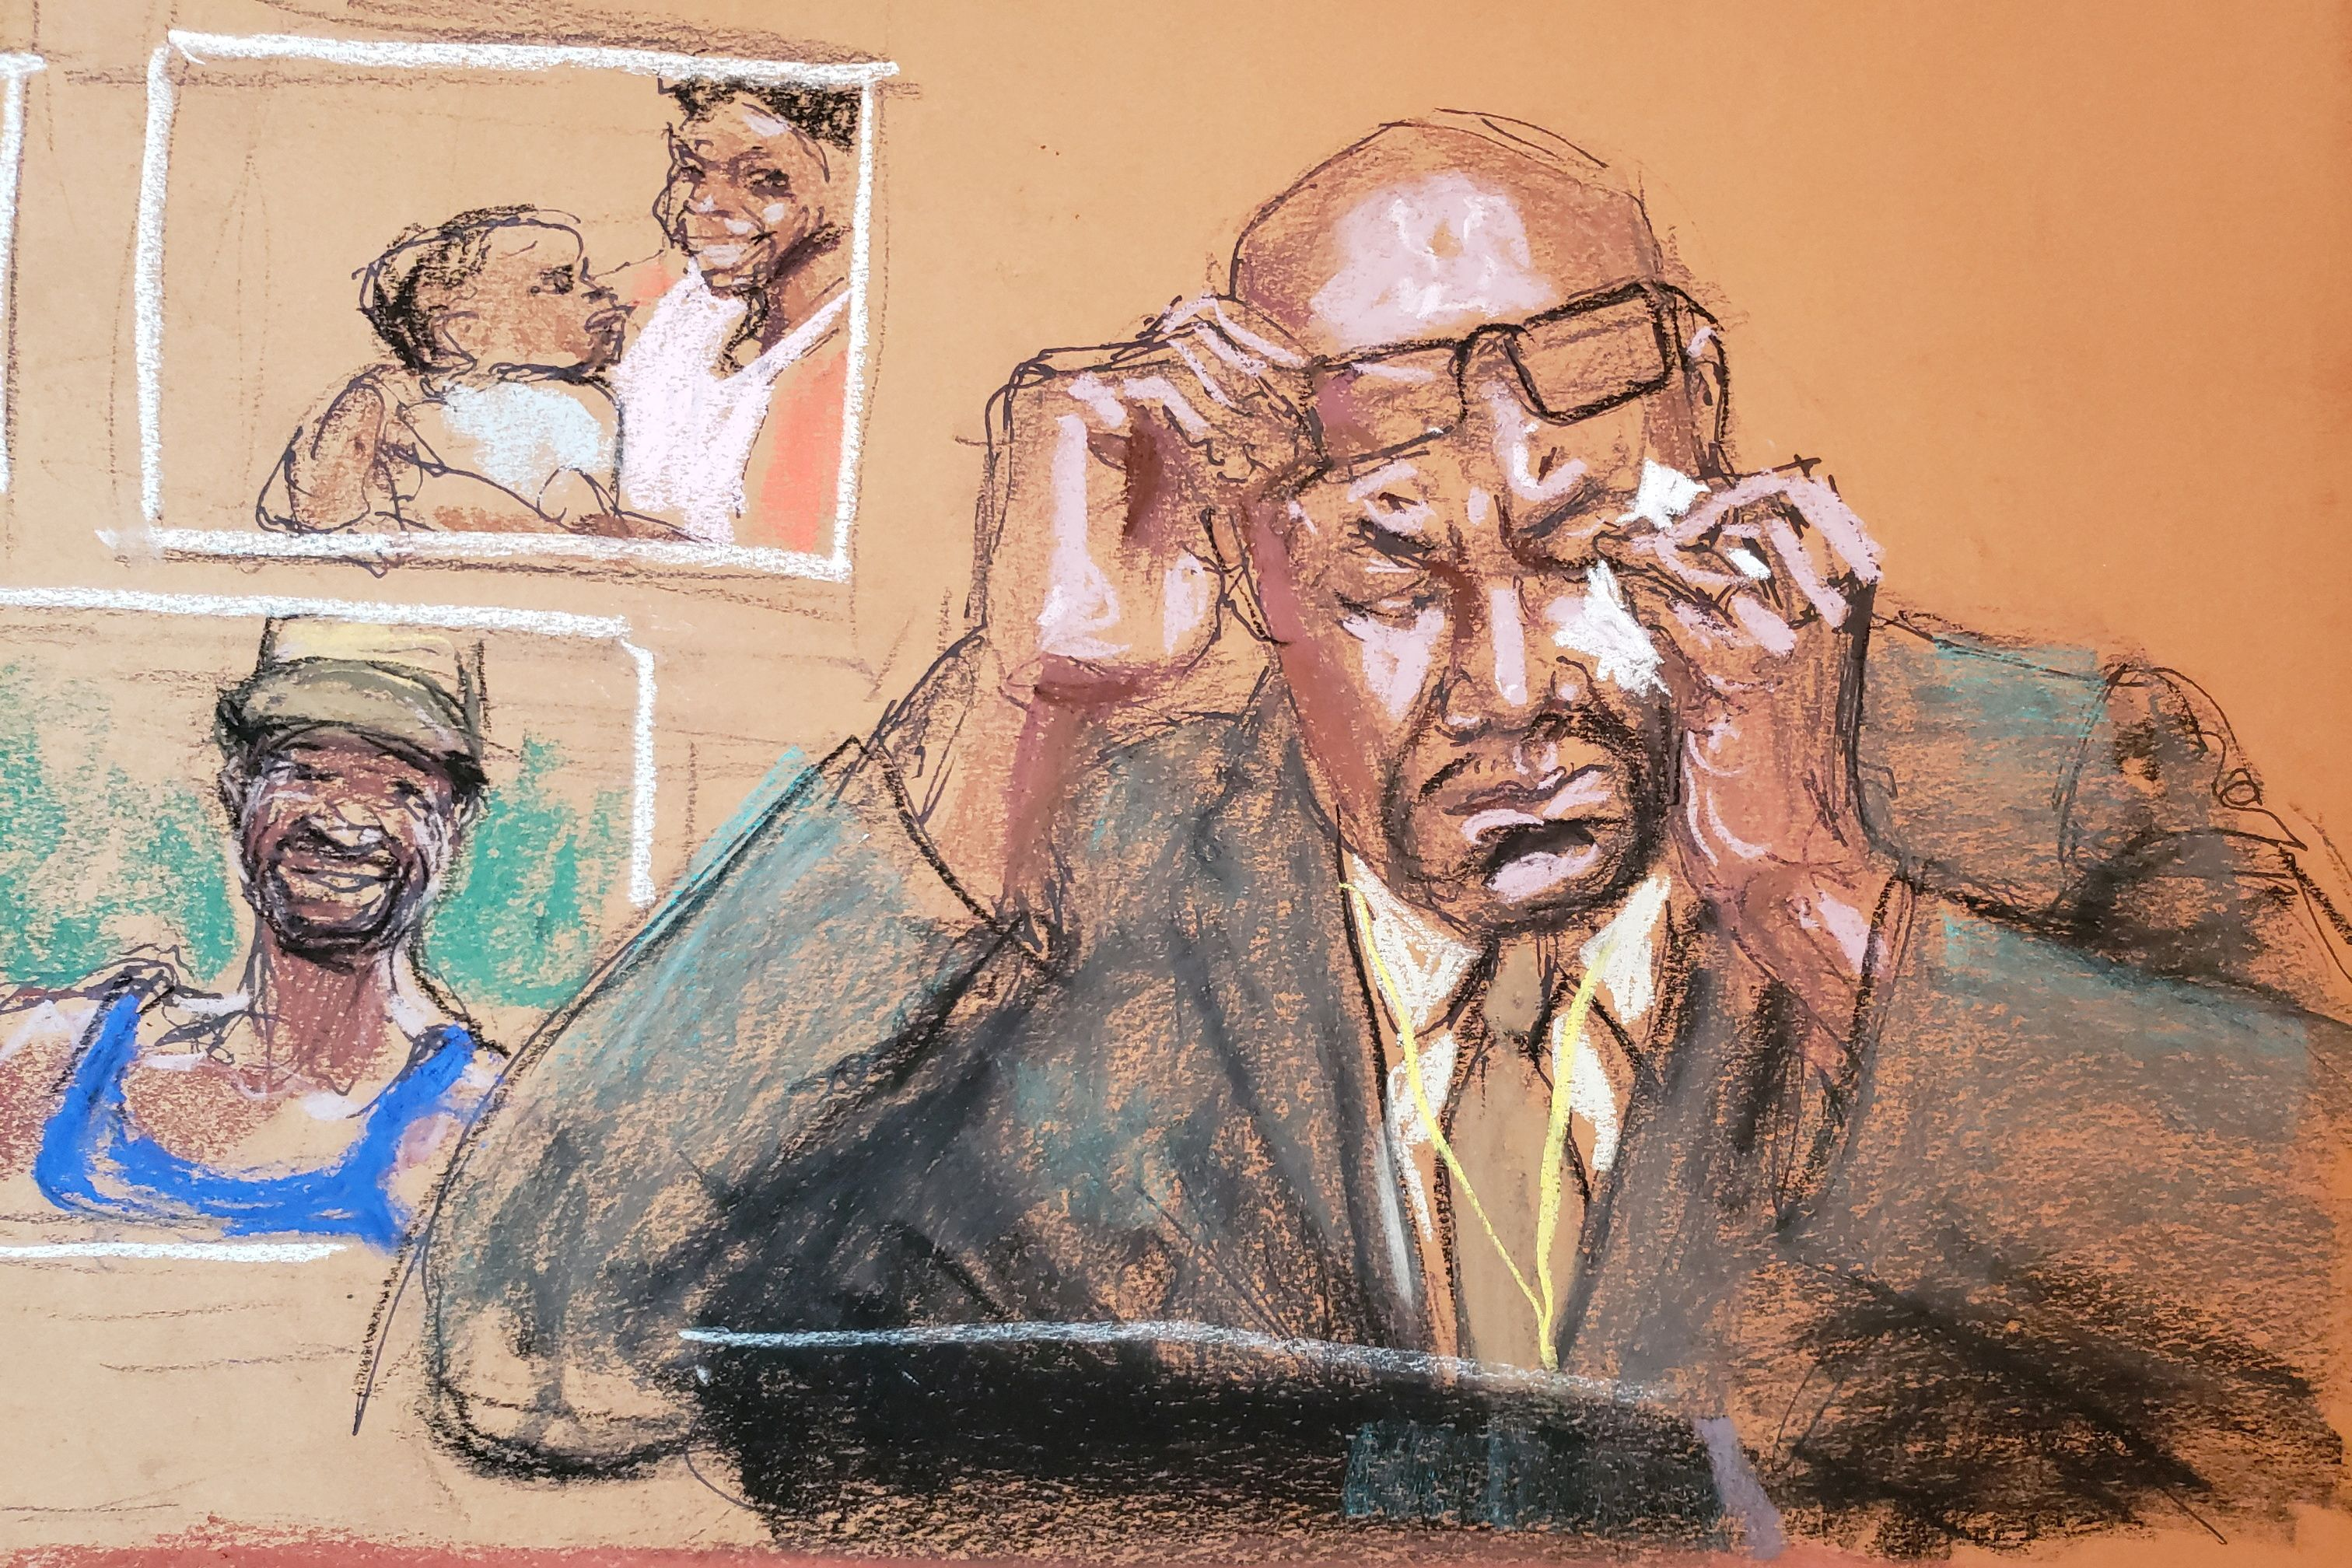 Philonise Floyd speaks about his brother as he answers questions on the eleventh day of the trial of former Minneapolis police officer Derek Chauvin for second-degree murder, third-degree murder and second-degree manslaughter in the death of George Floyd in Minneapolis, Minnesota, U.S. April 12, 2021 in this courtroom sketch. REUTERS/Jane Rosenberg